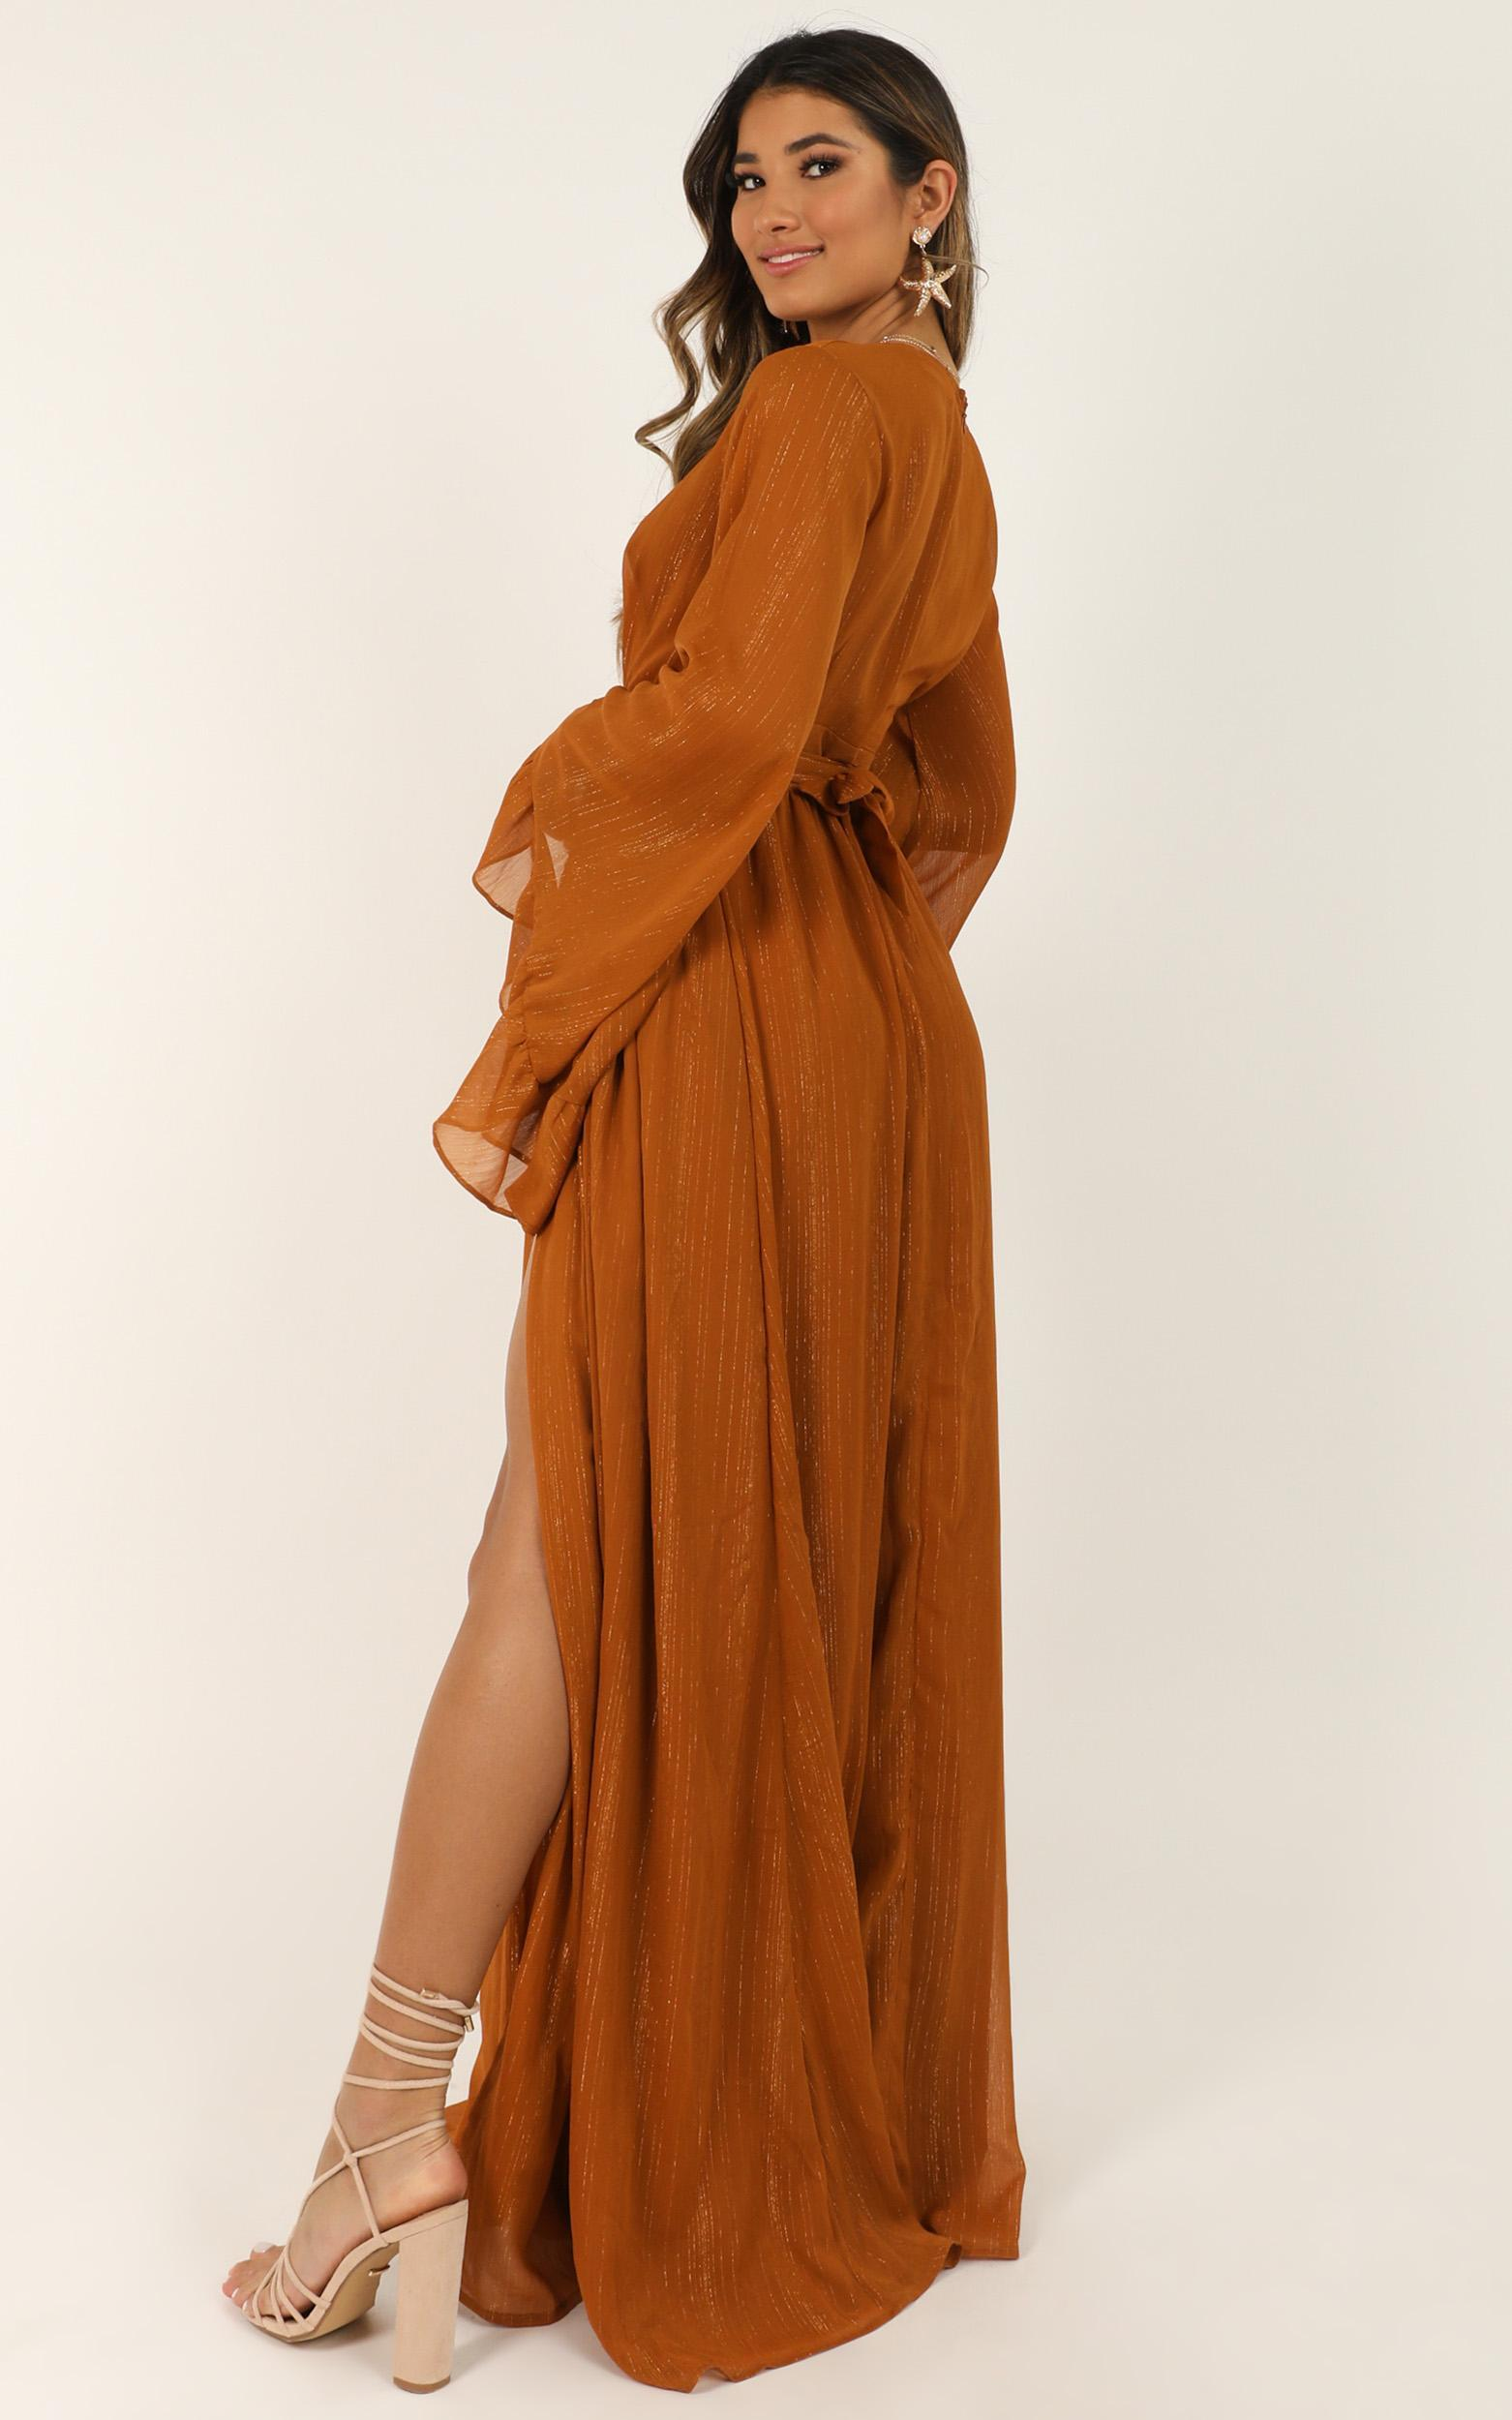 Dangerous Woman Dress In Rust - 20 (XXXXL), Rust, hi-res image number null